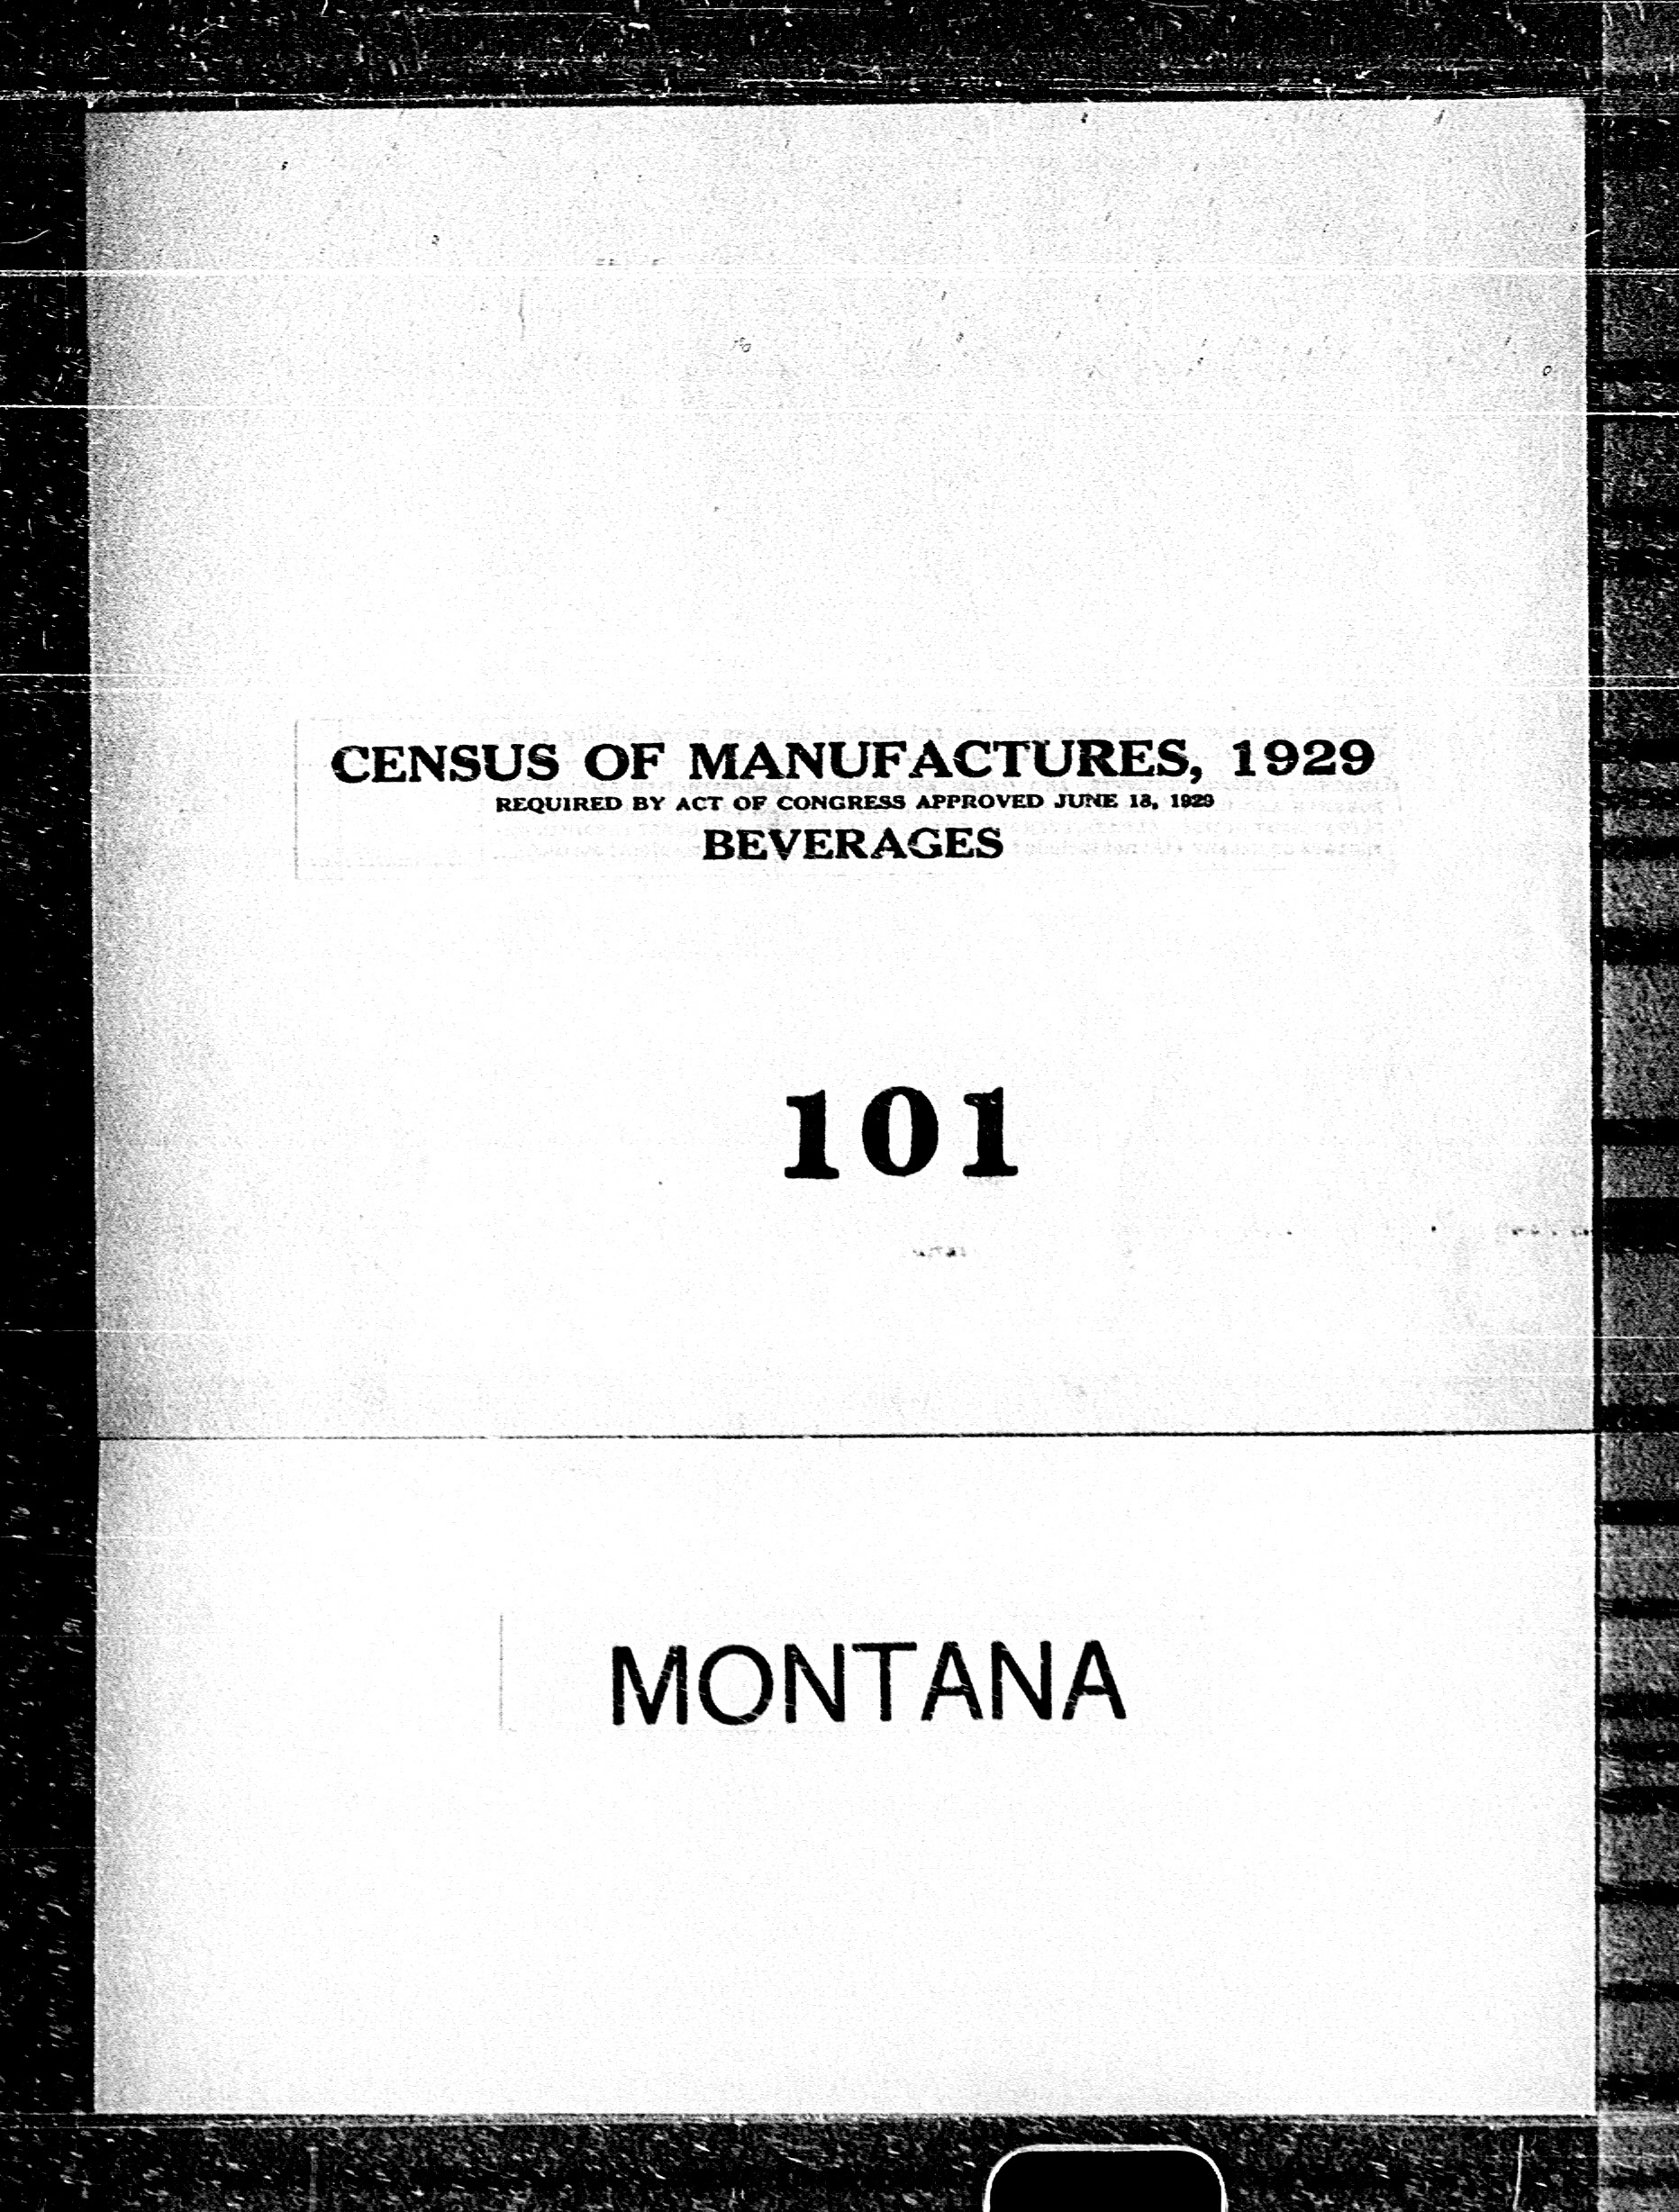 Montana: Industry No. 101 - Beverages